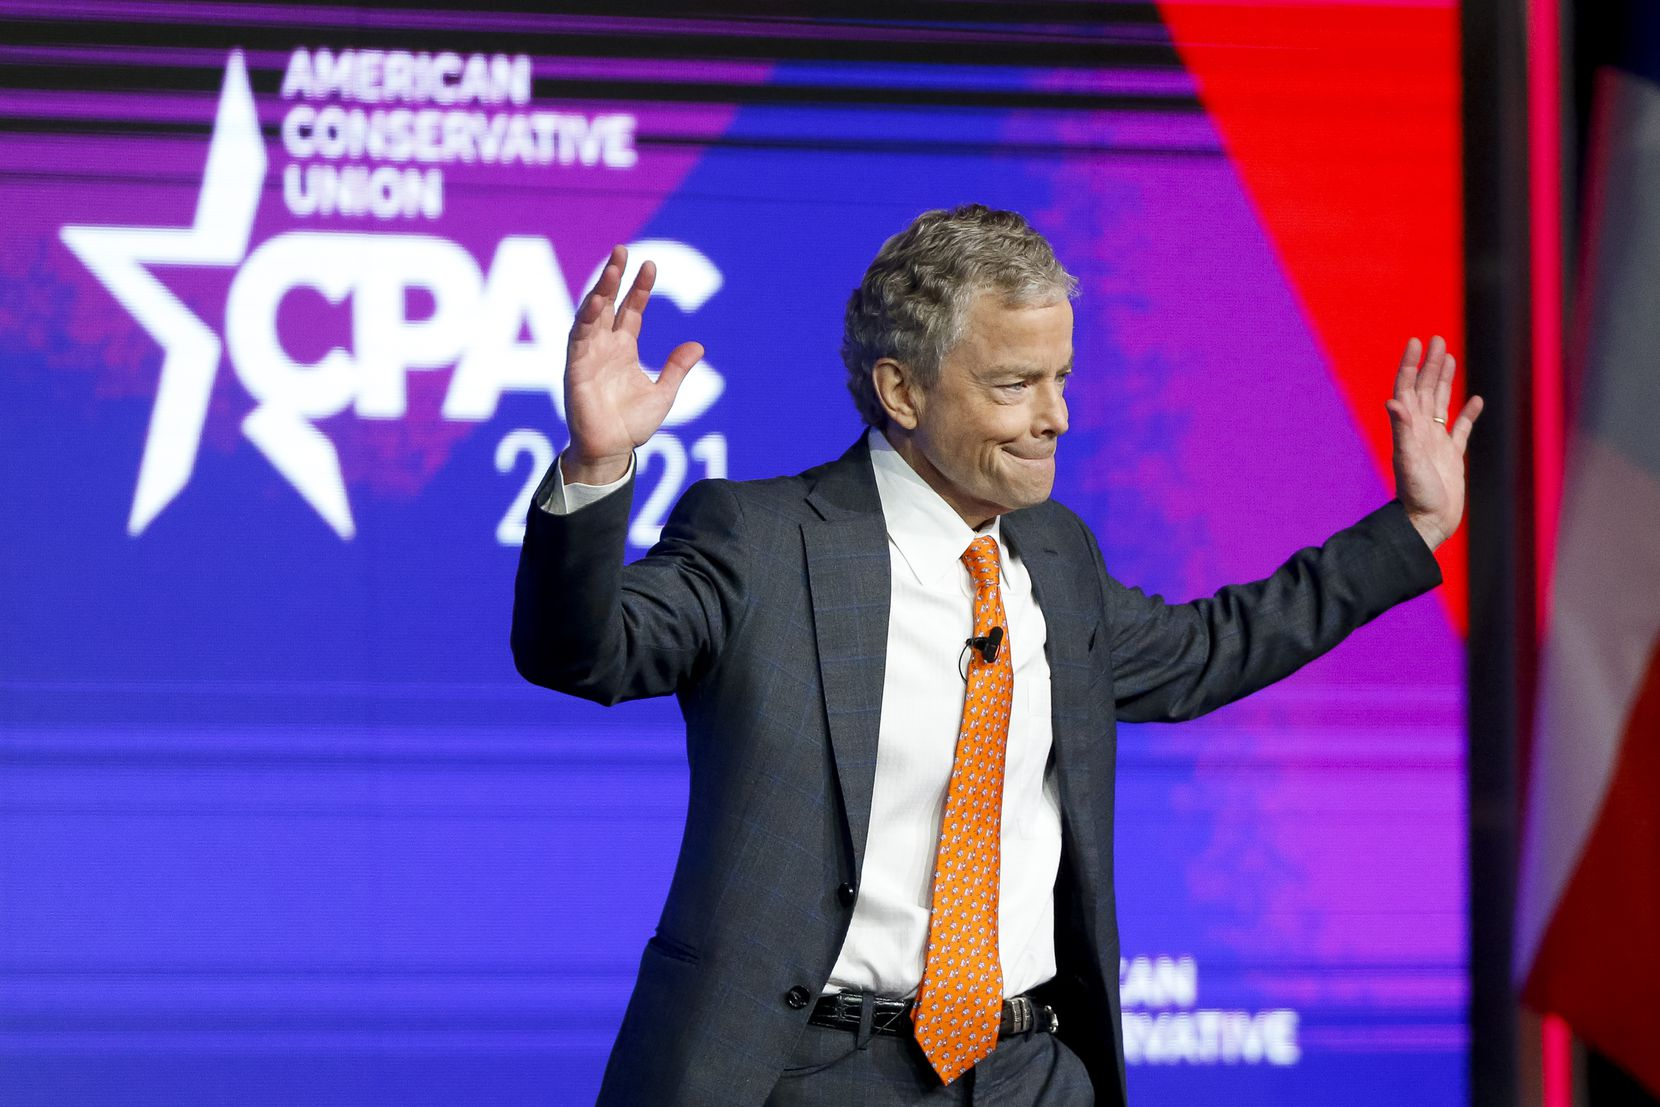 Former Texas state Sen. Don Huffines waves to the crowd before speaking at the Conservative Political Action Conference in Dallas.